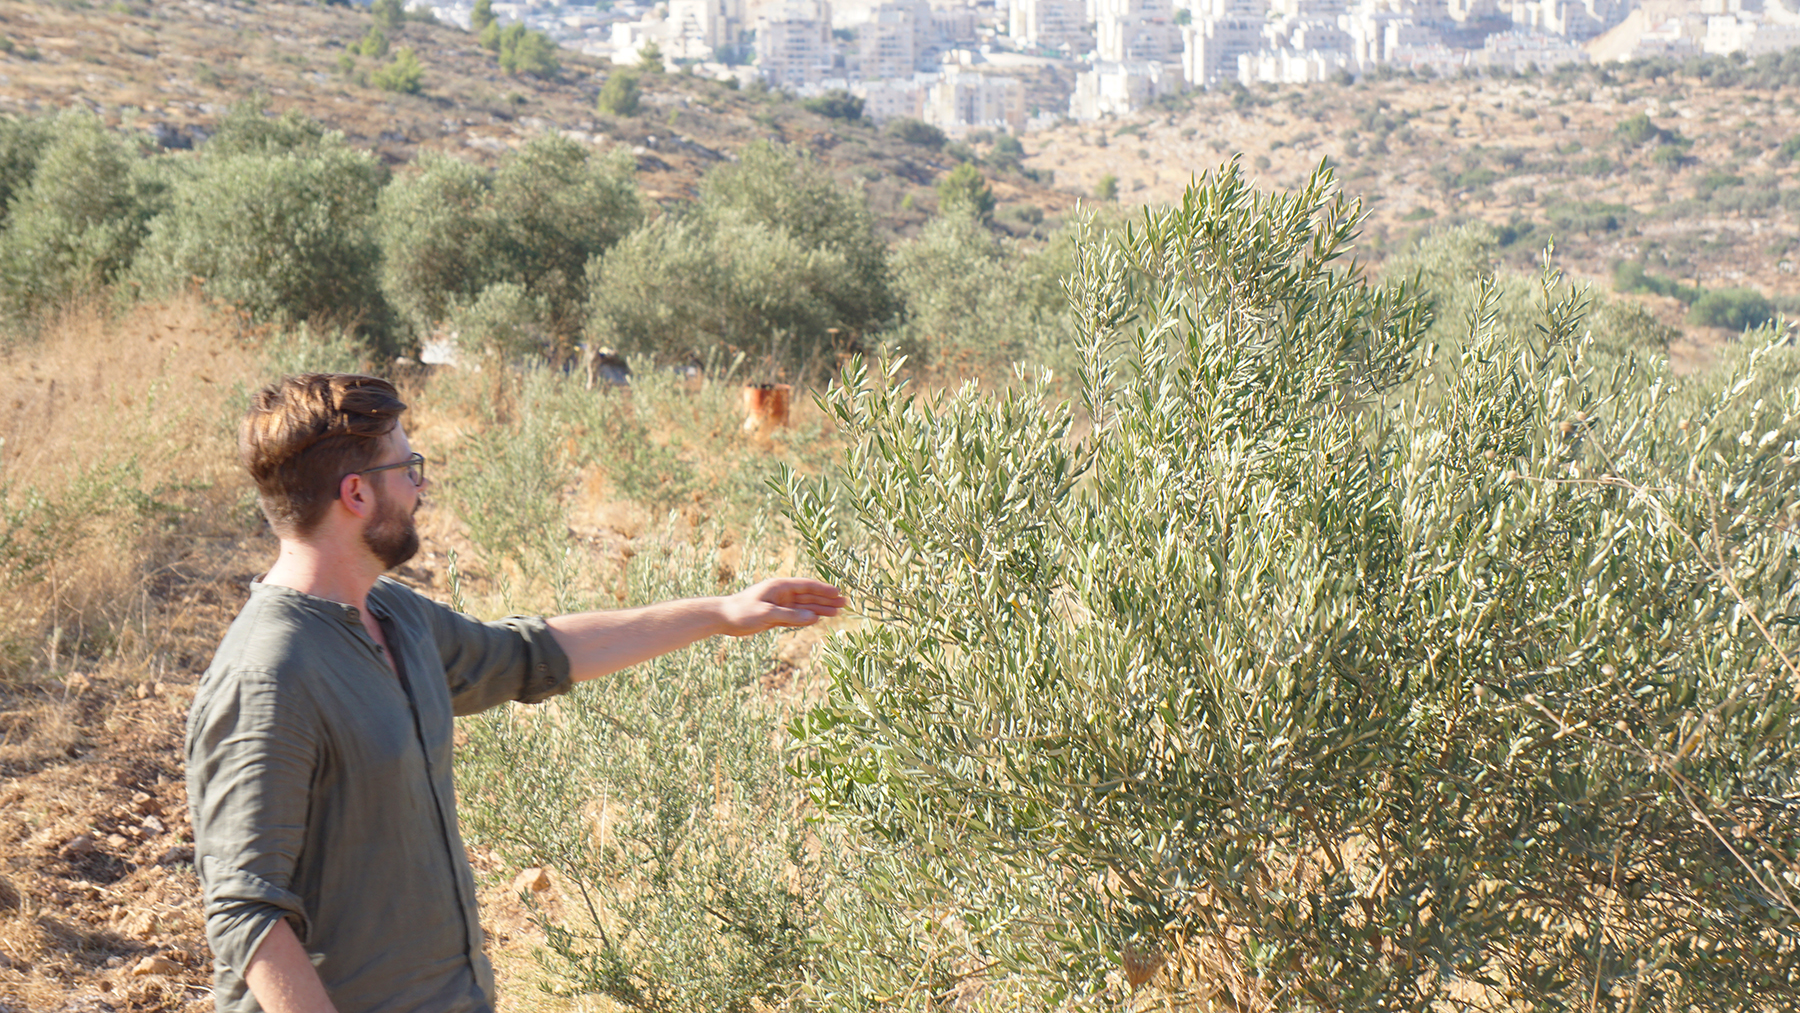 Palestinian olive trees a peace symbol within water conflicts around 800 000 olive trees have been uprooted in the conflict between israel and palestine since 1967 an area of 33 central parks or more than 15000 buycottarizona Choice Image